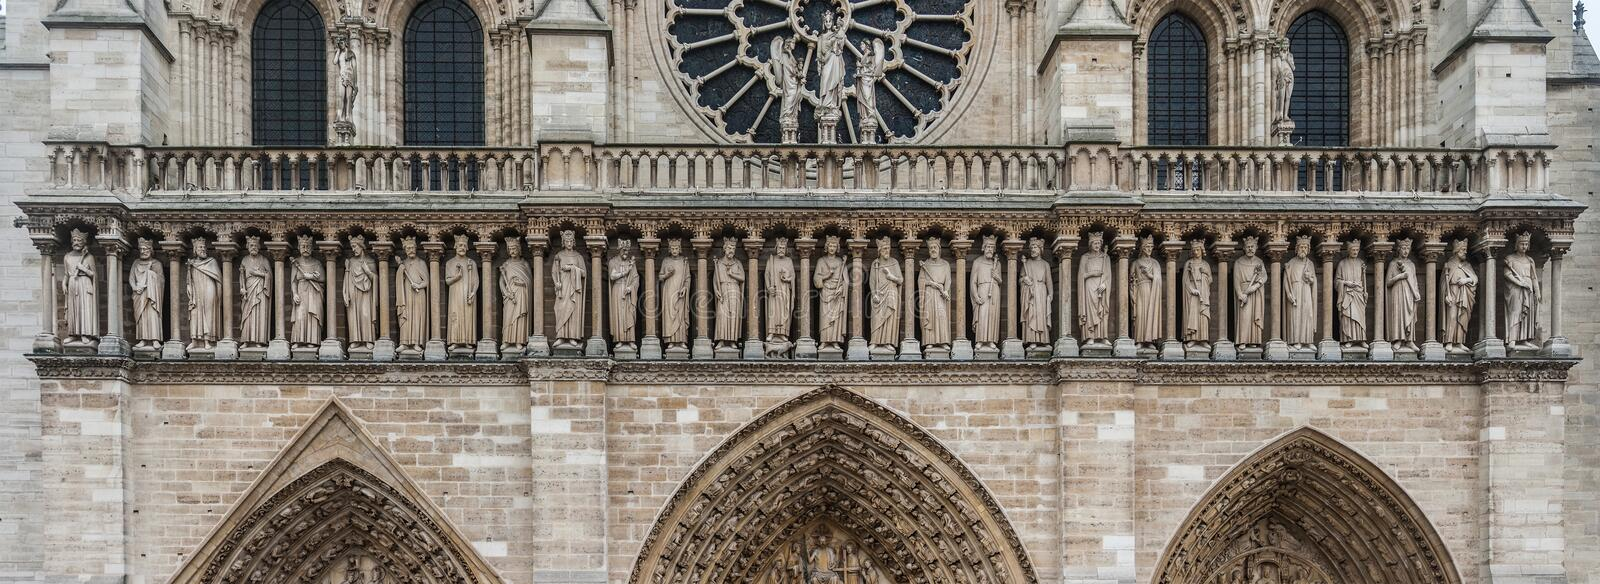 Facade of the Notre-Dame Our Lady cathedral of Paris, France royalty free stock photos